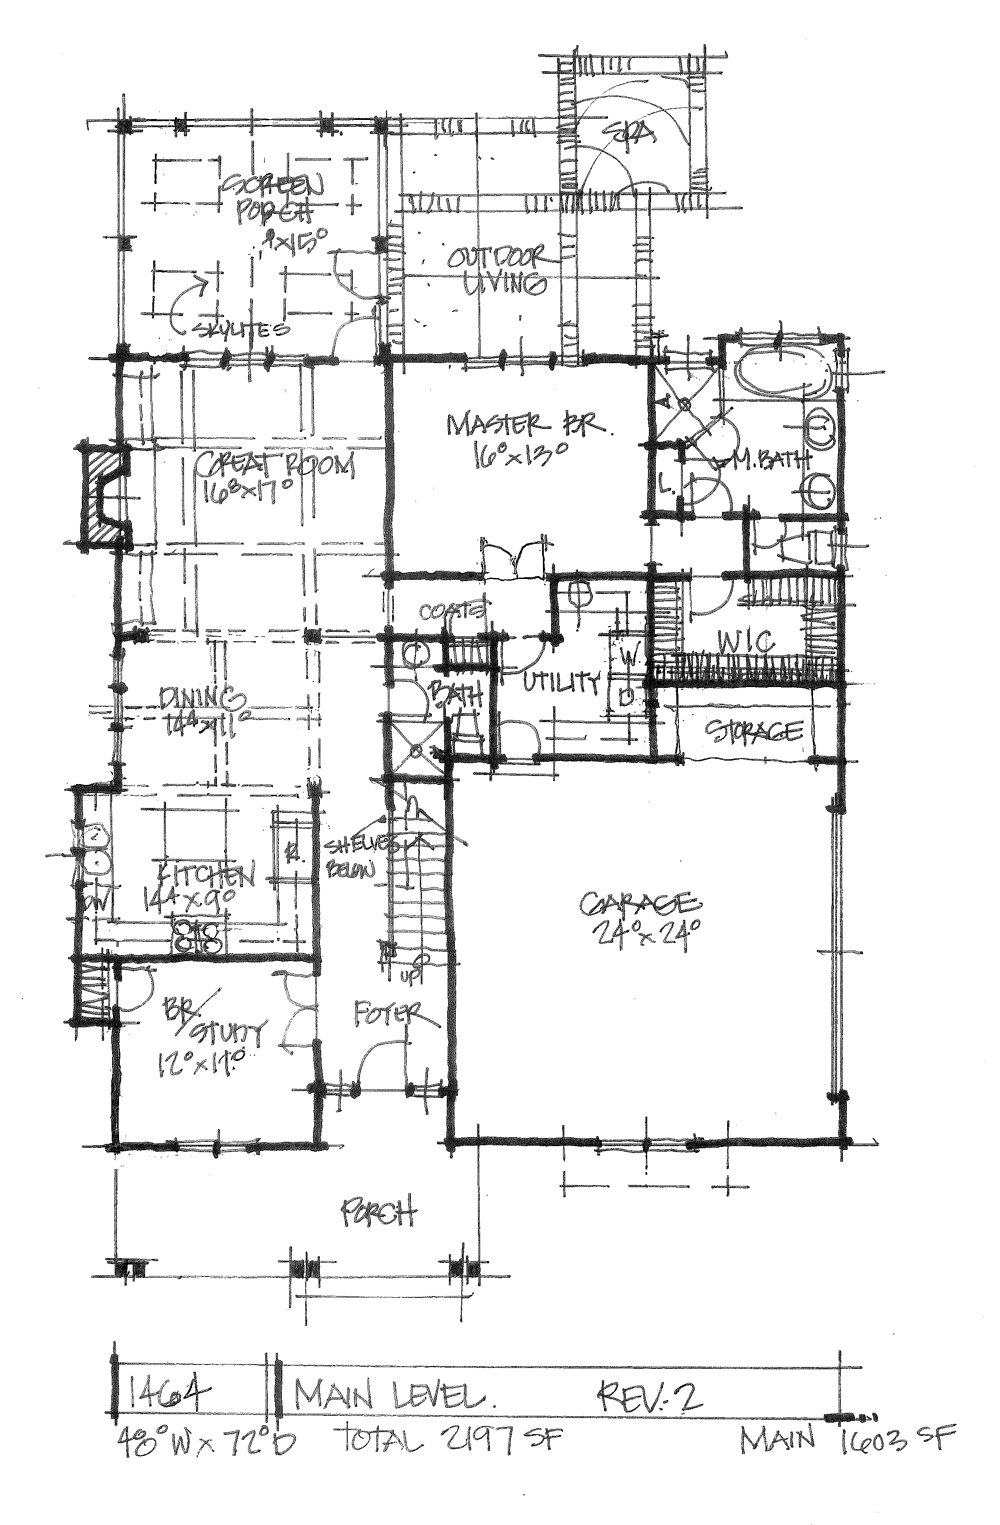 Check out the first floor plan of house plan 1464.